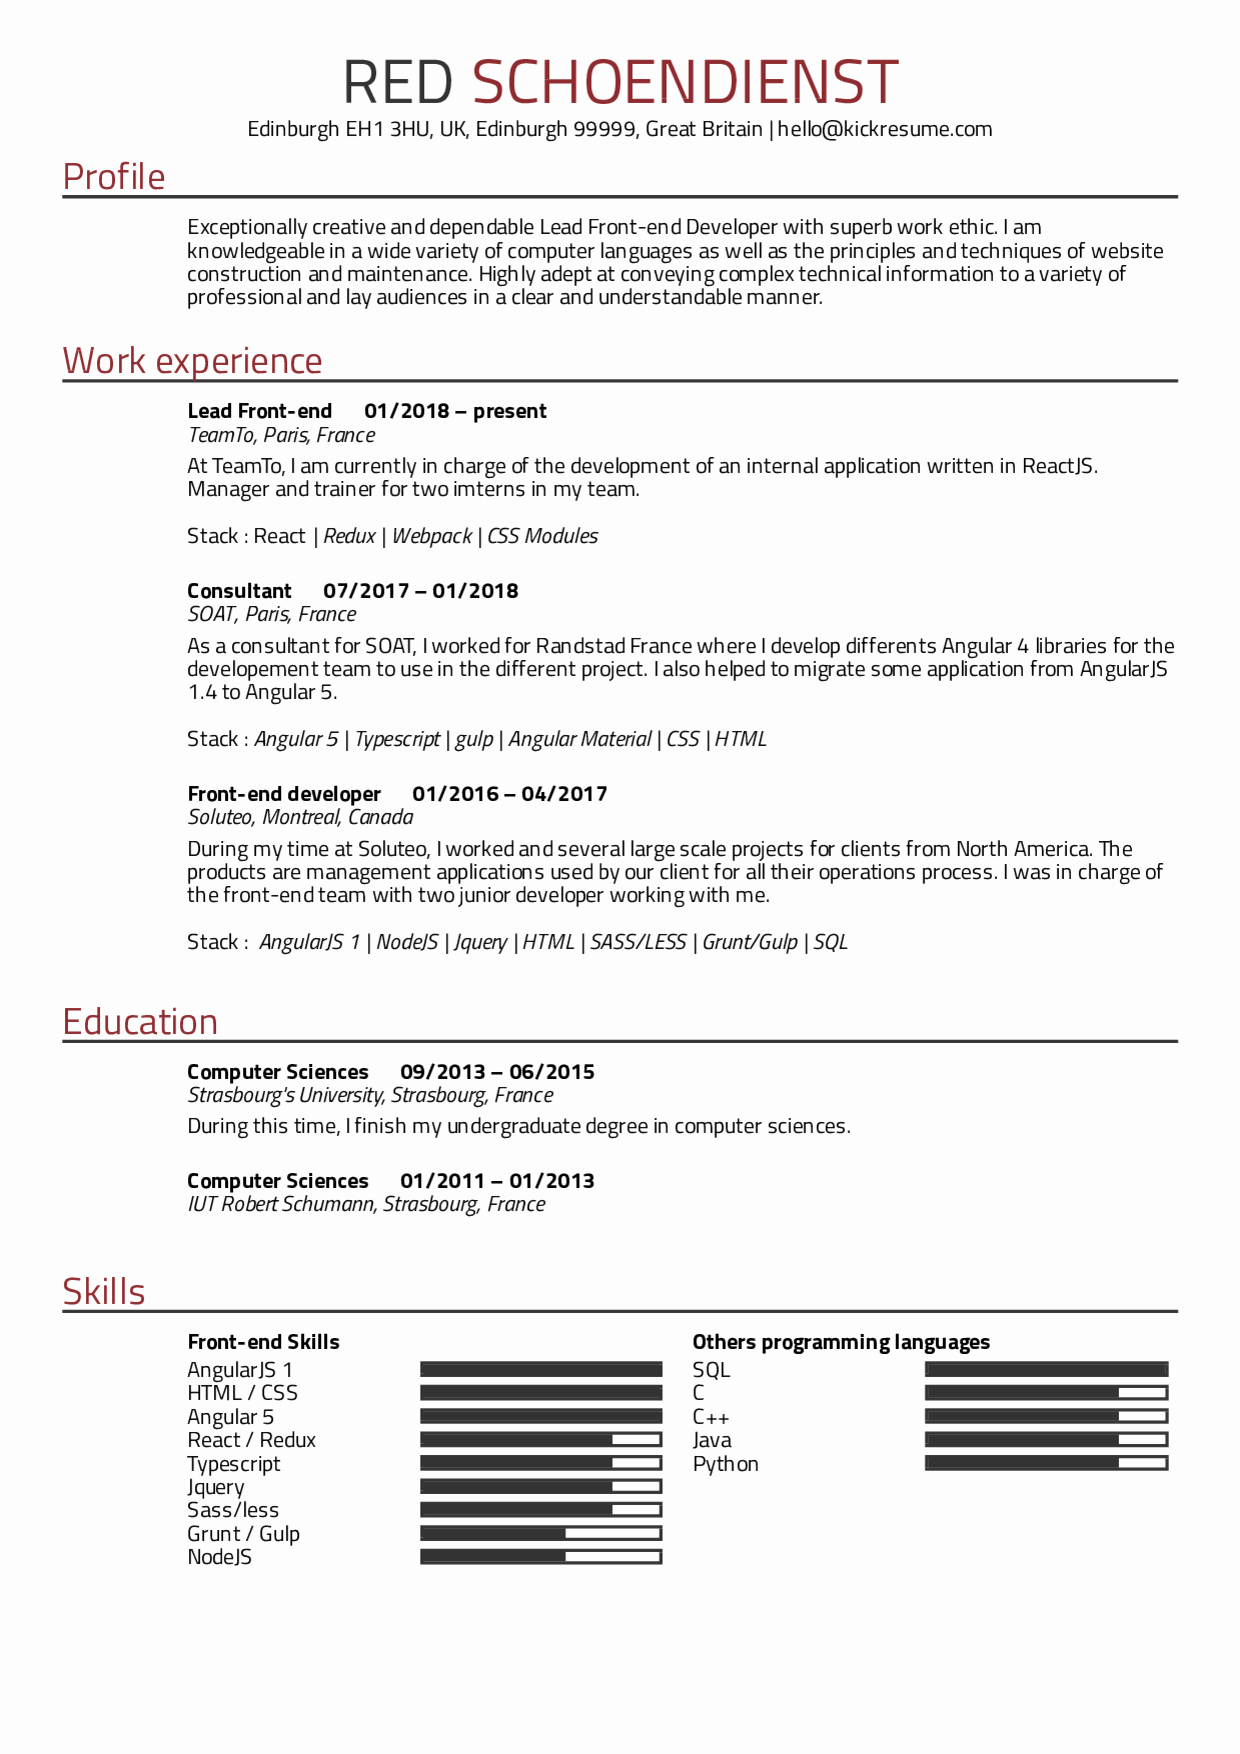 Front End Developer Resume Template Beautiful Resume Examples by Real People Teamto Lead Front End